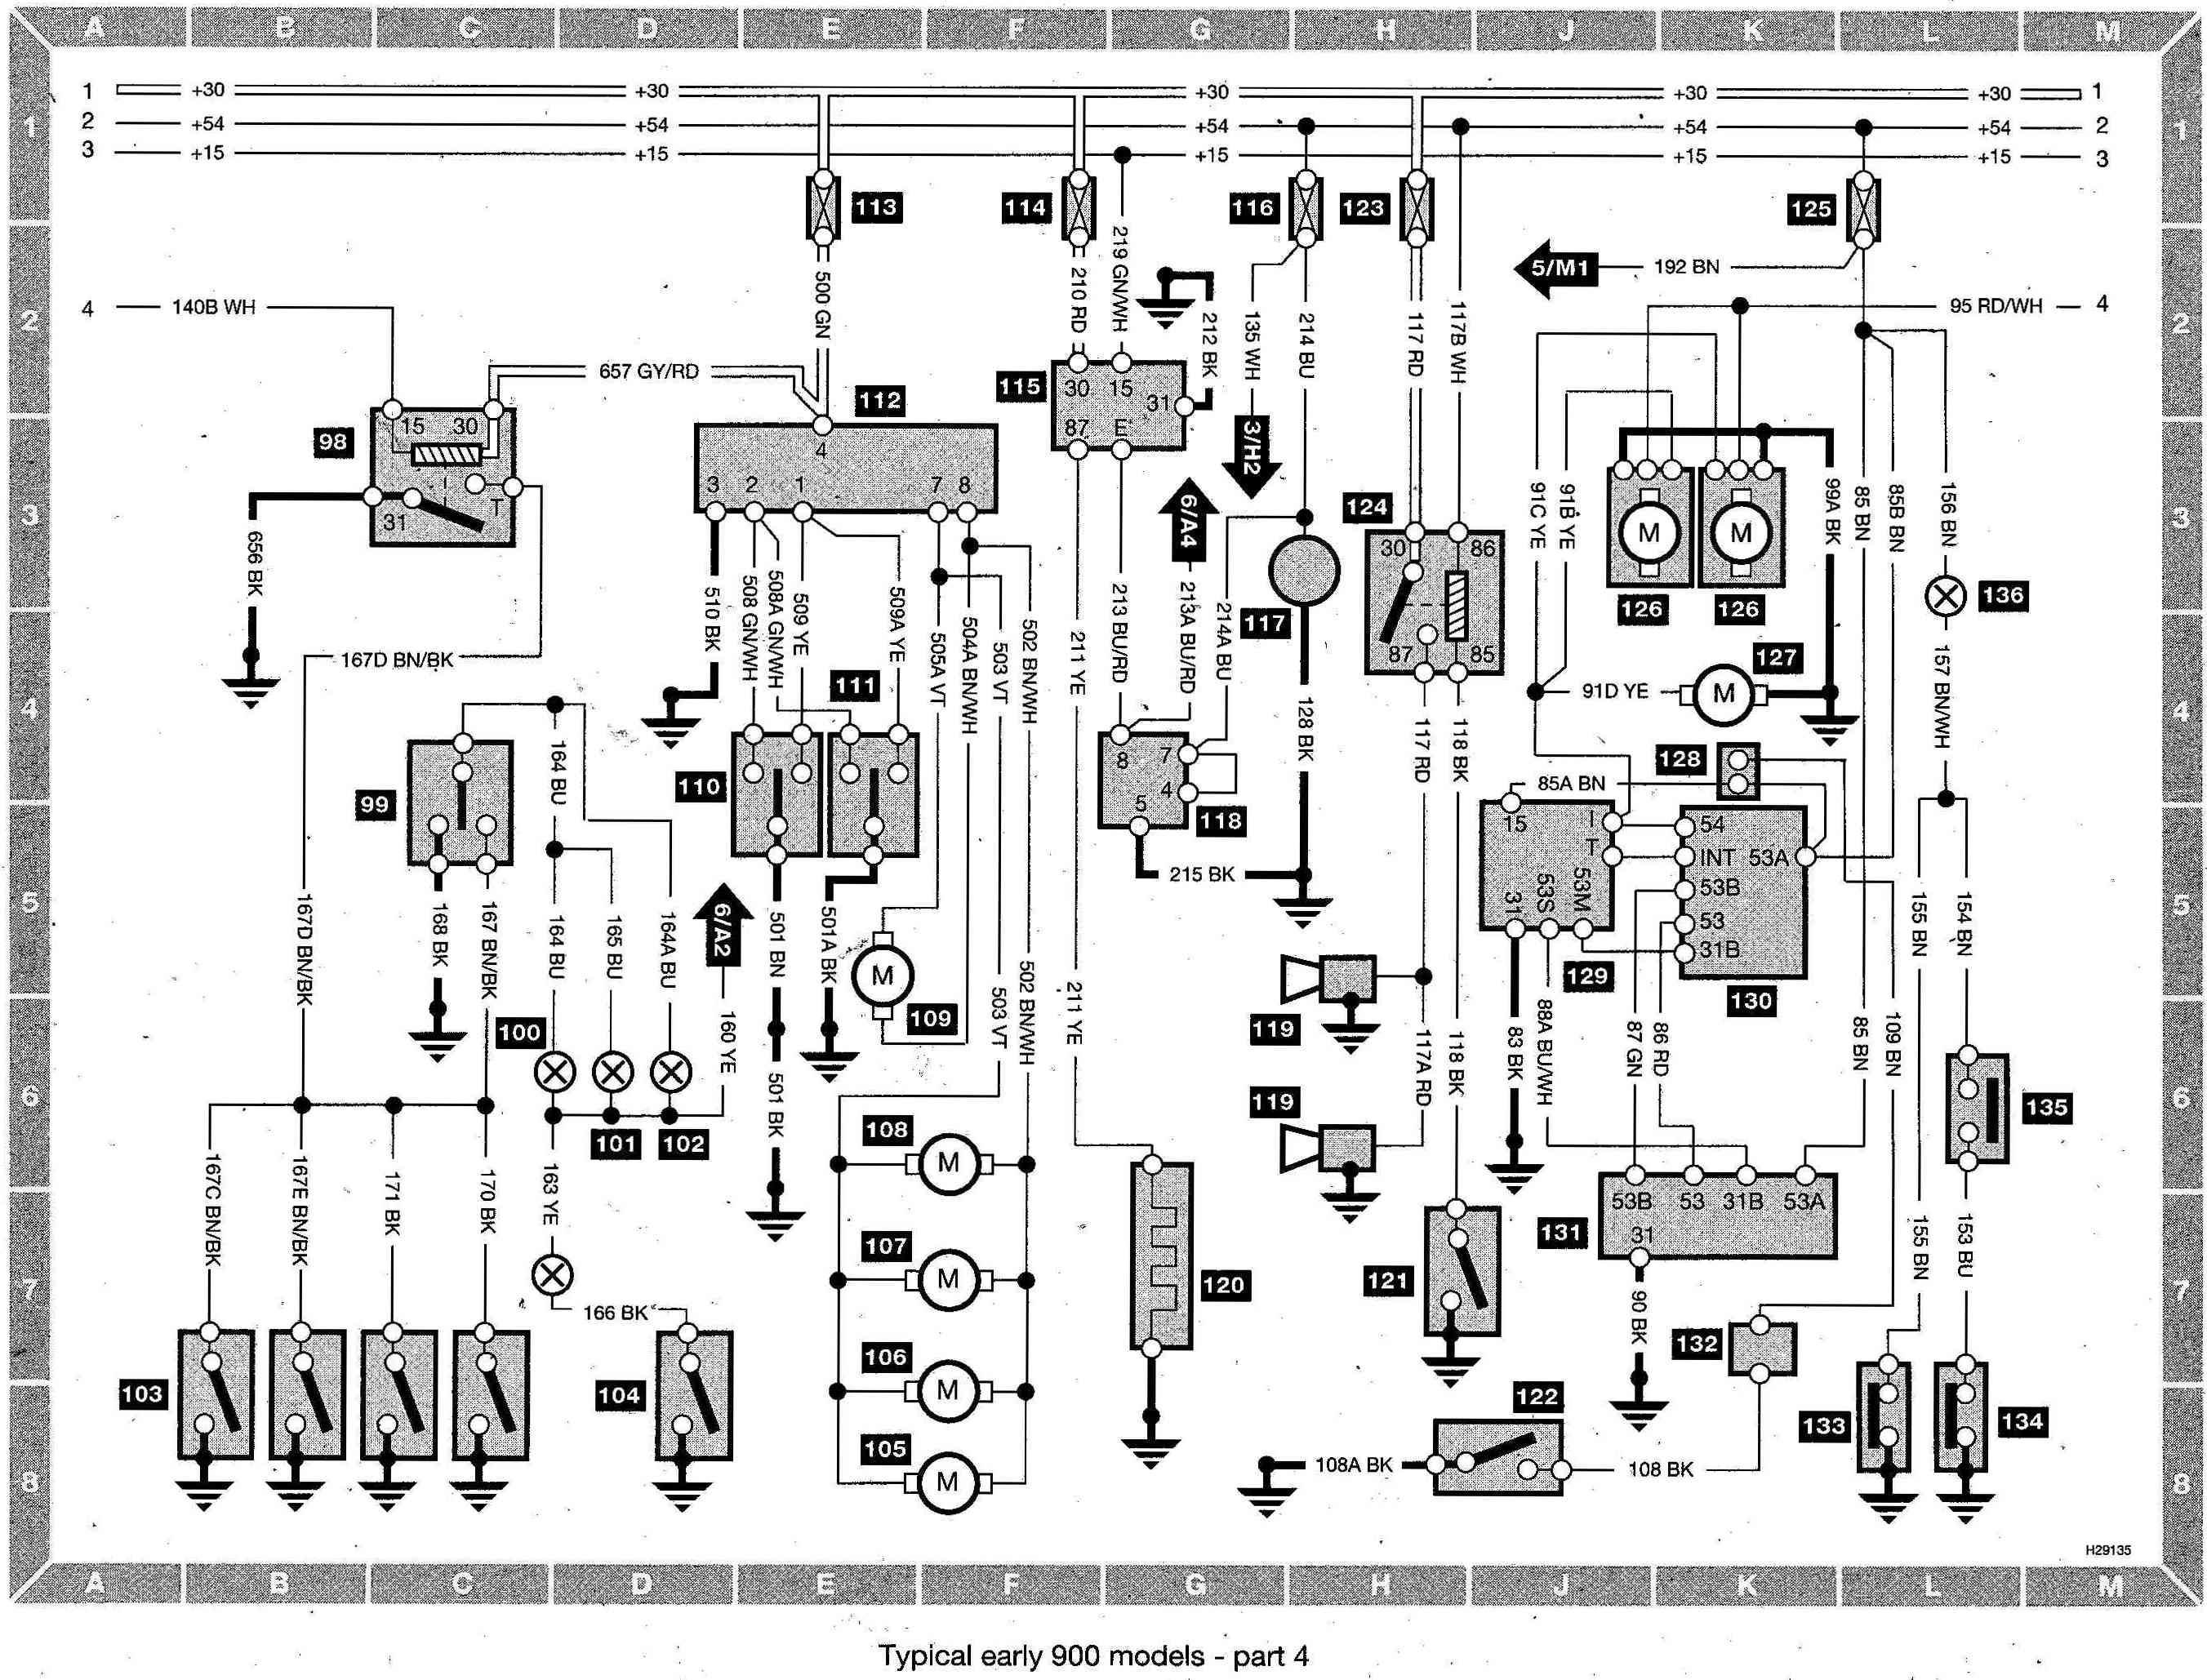 saab 9 3 wiring schematics saab wiring schematics index of /saab/saab 900 wiring diagram (early models)